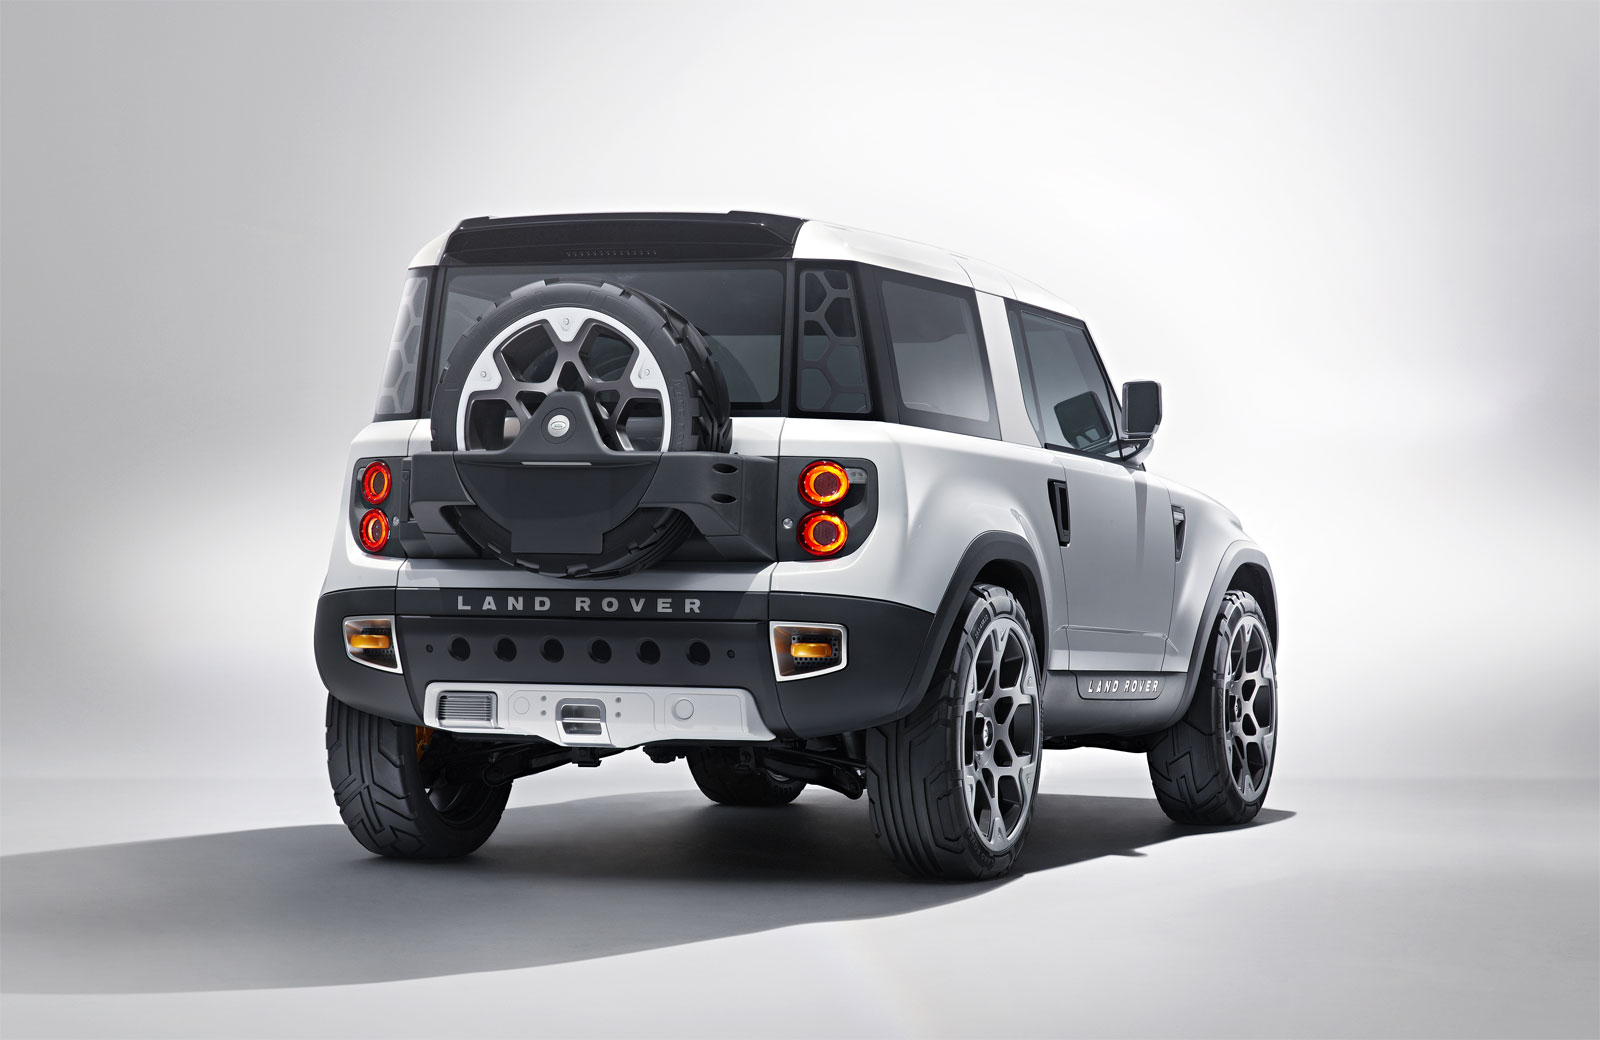 Land rover concept photo - 9